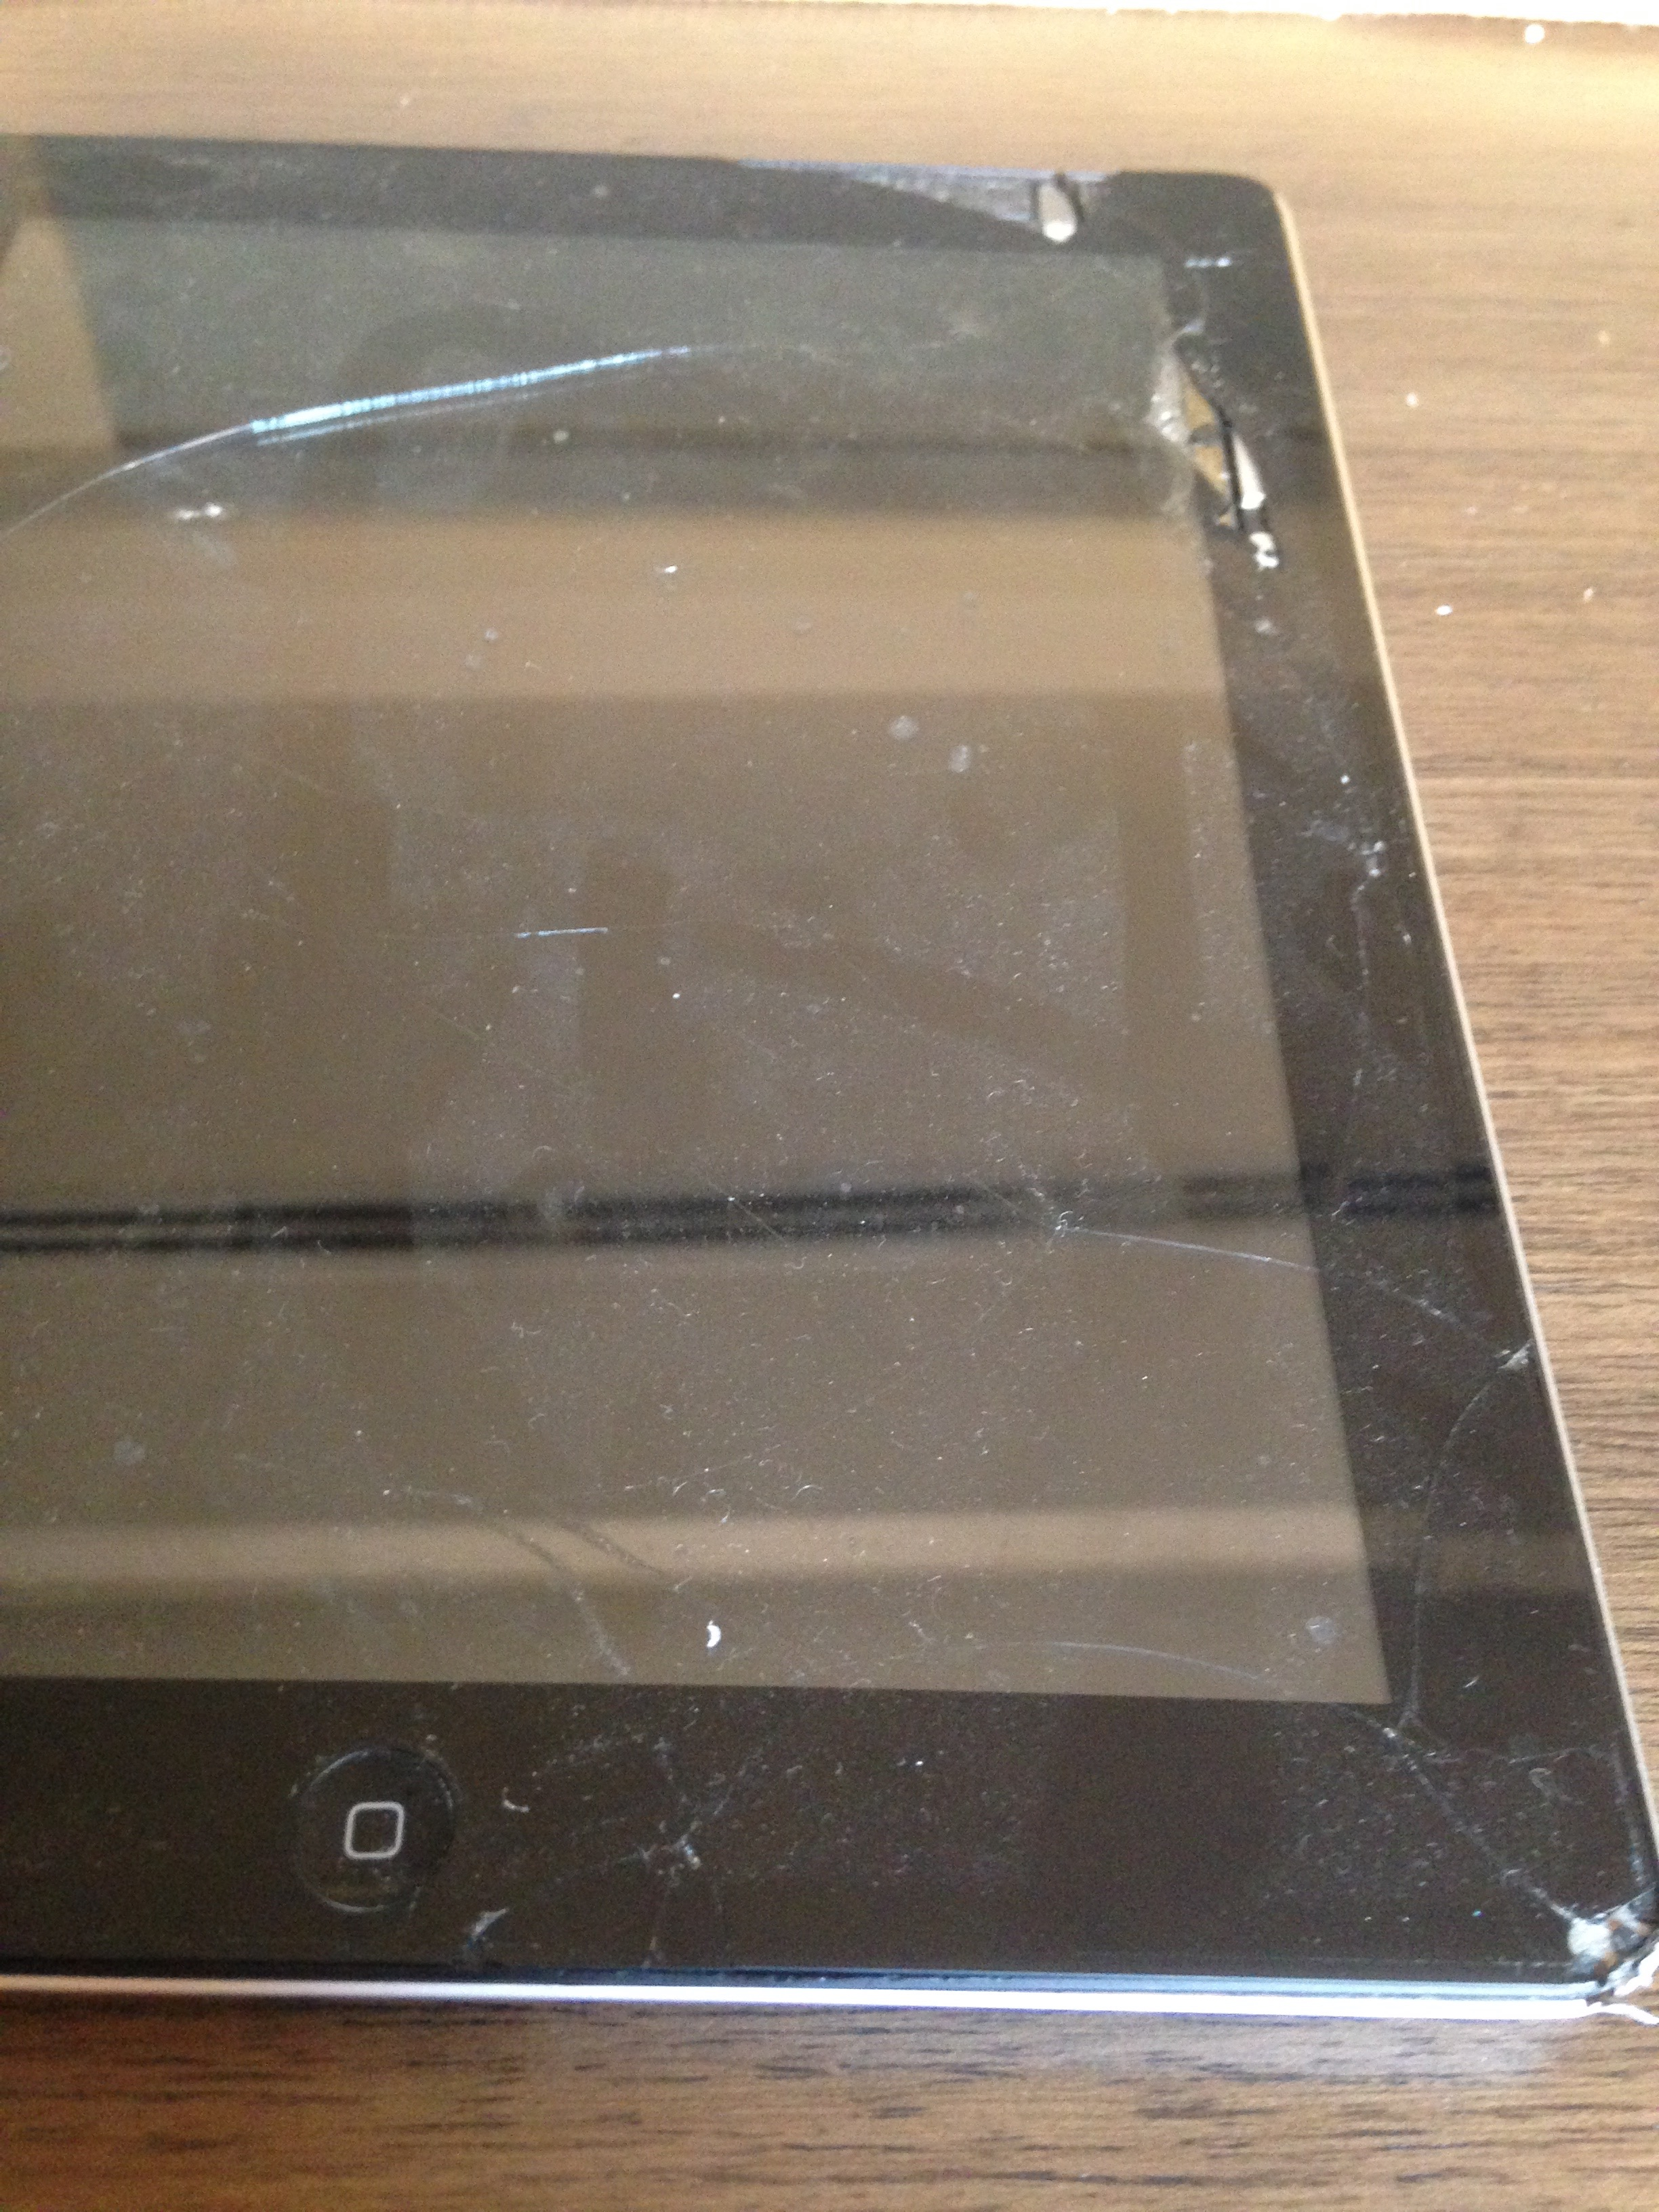 Broken iPad Screen in Abu Dhabi